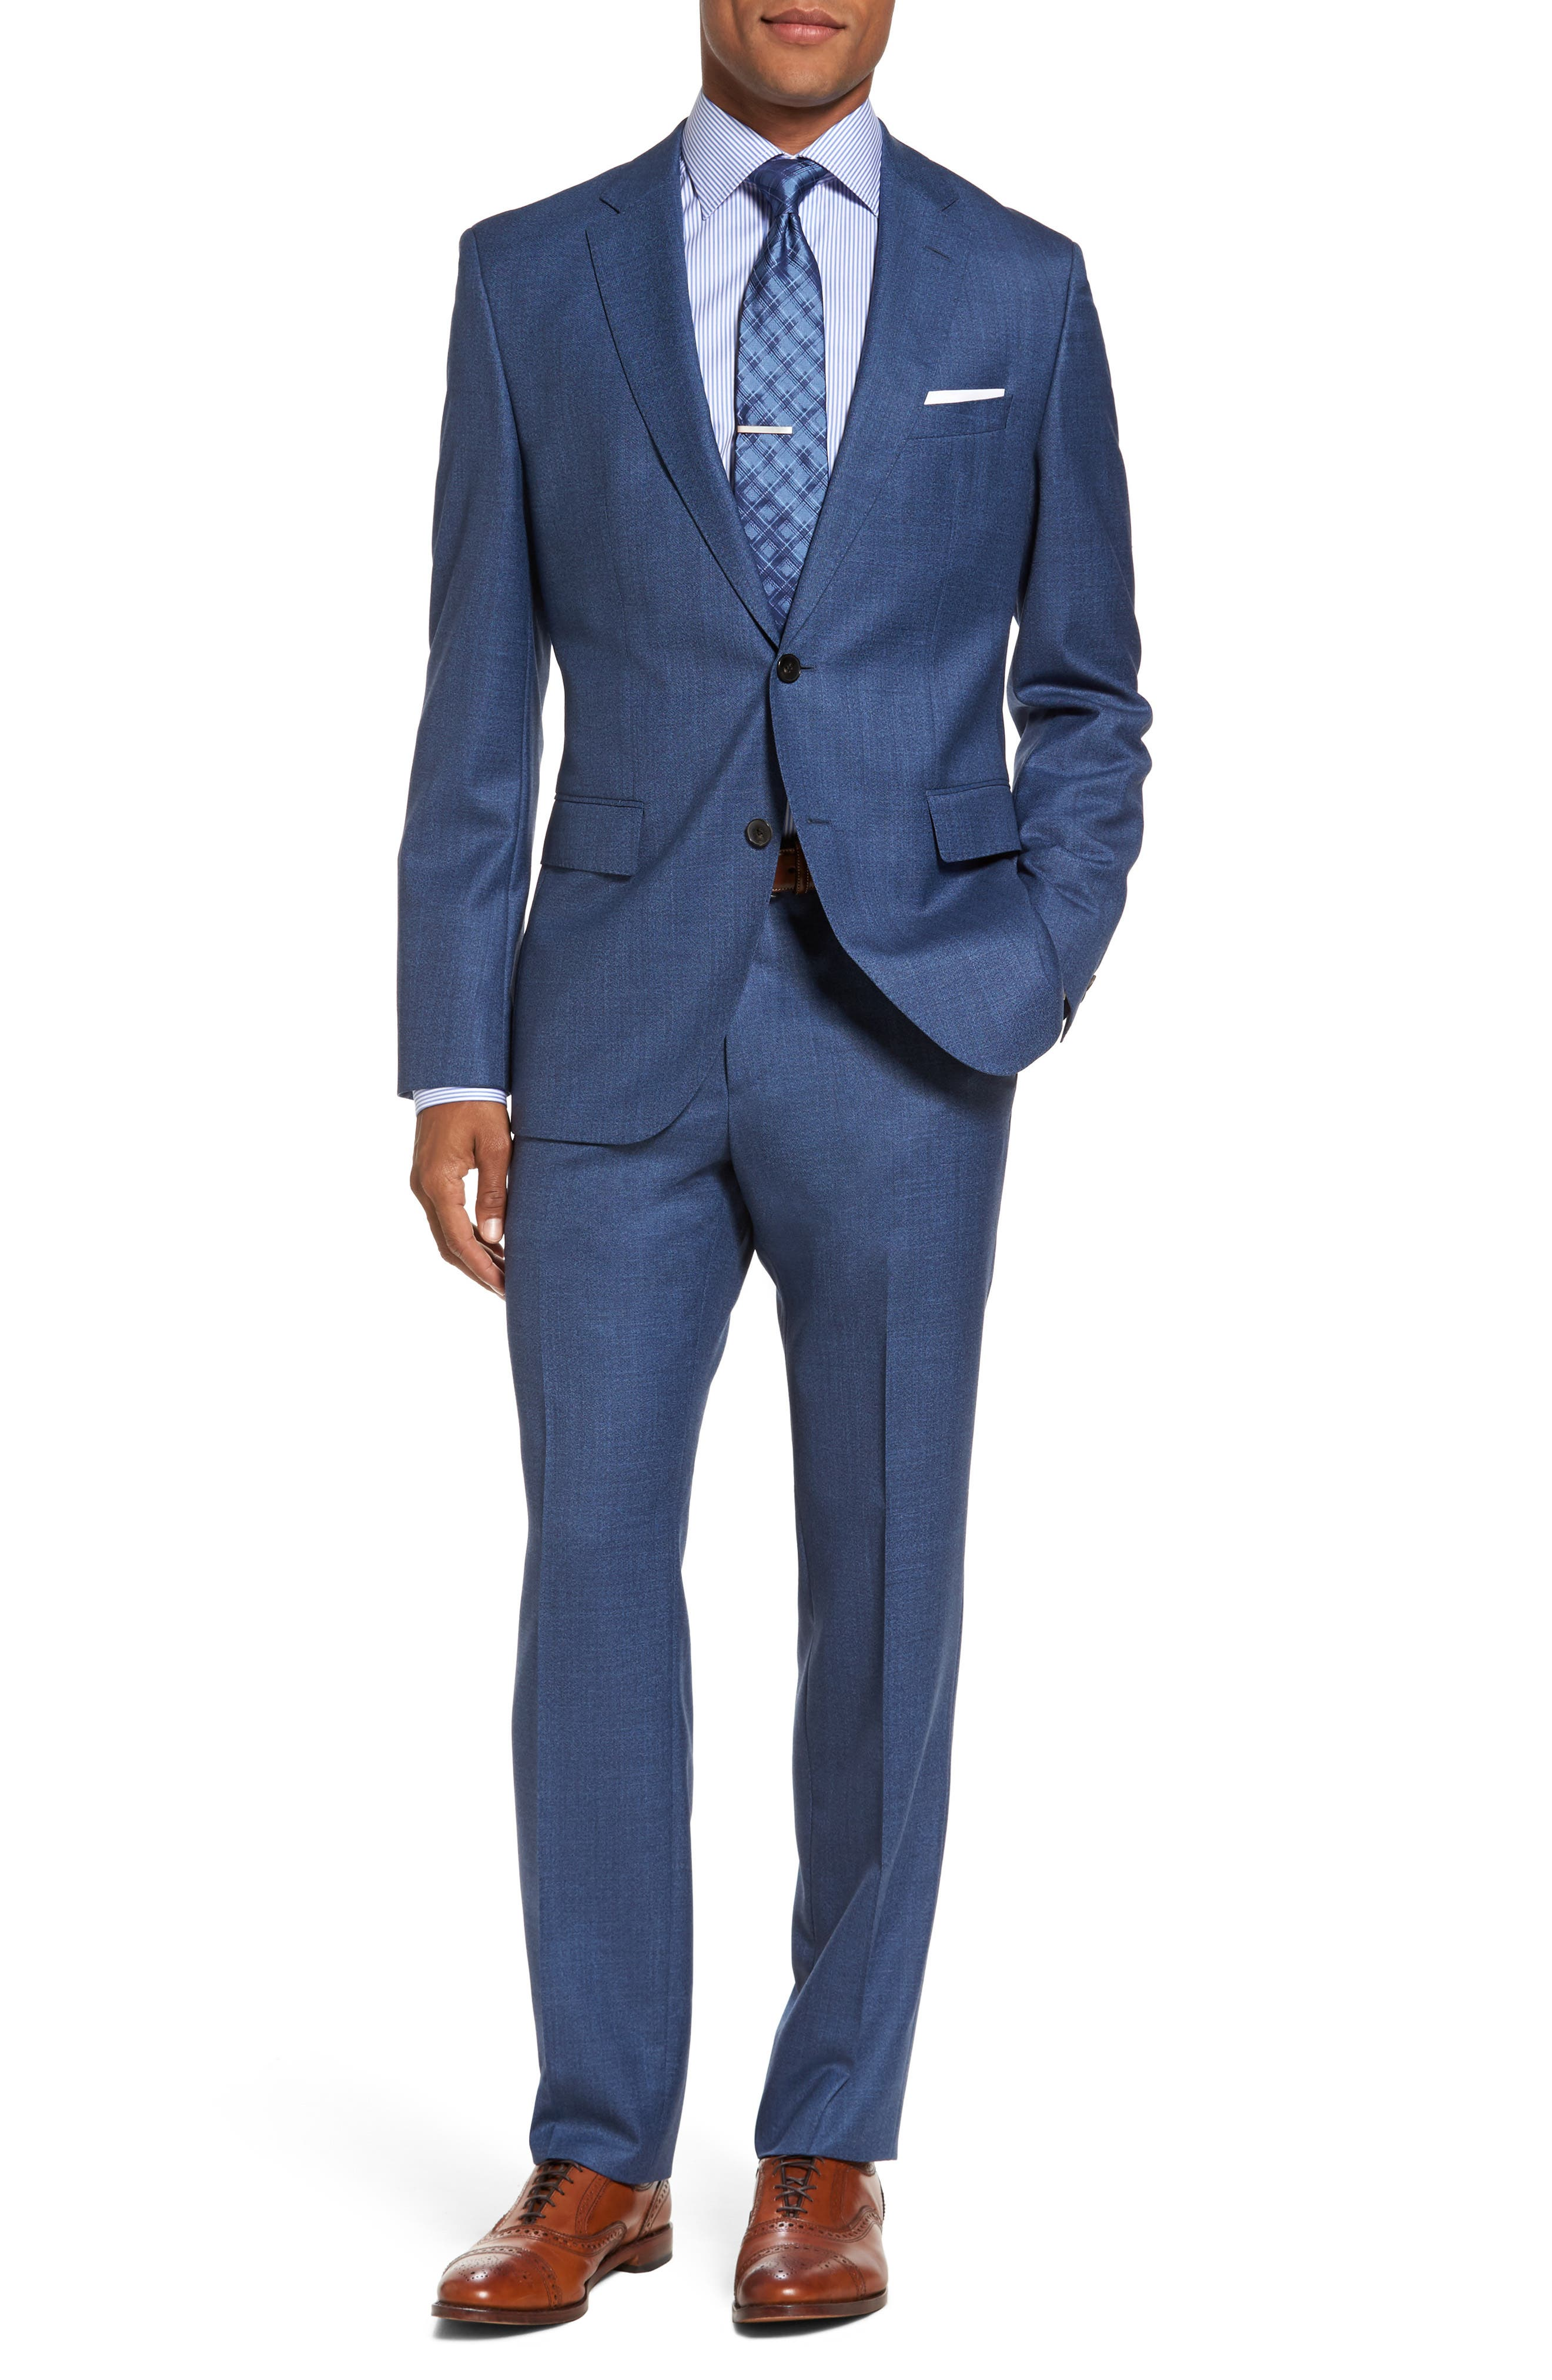 Main Image - BOSS Johnstons/Lenon Classic Fit Solid Wool Suit